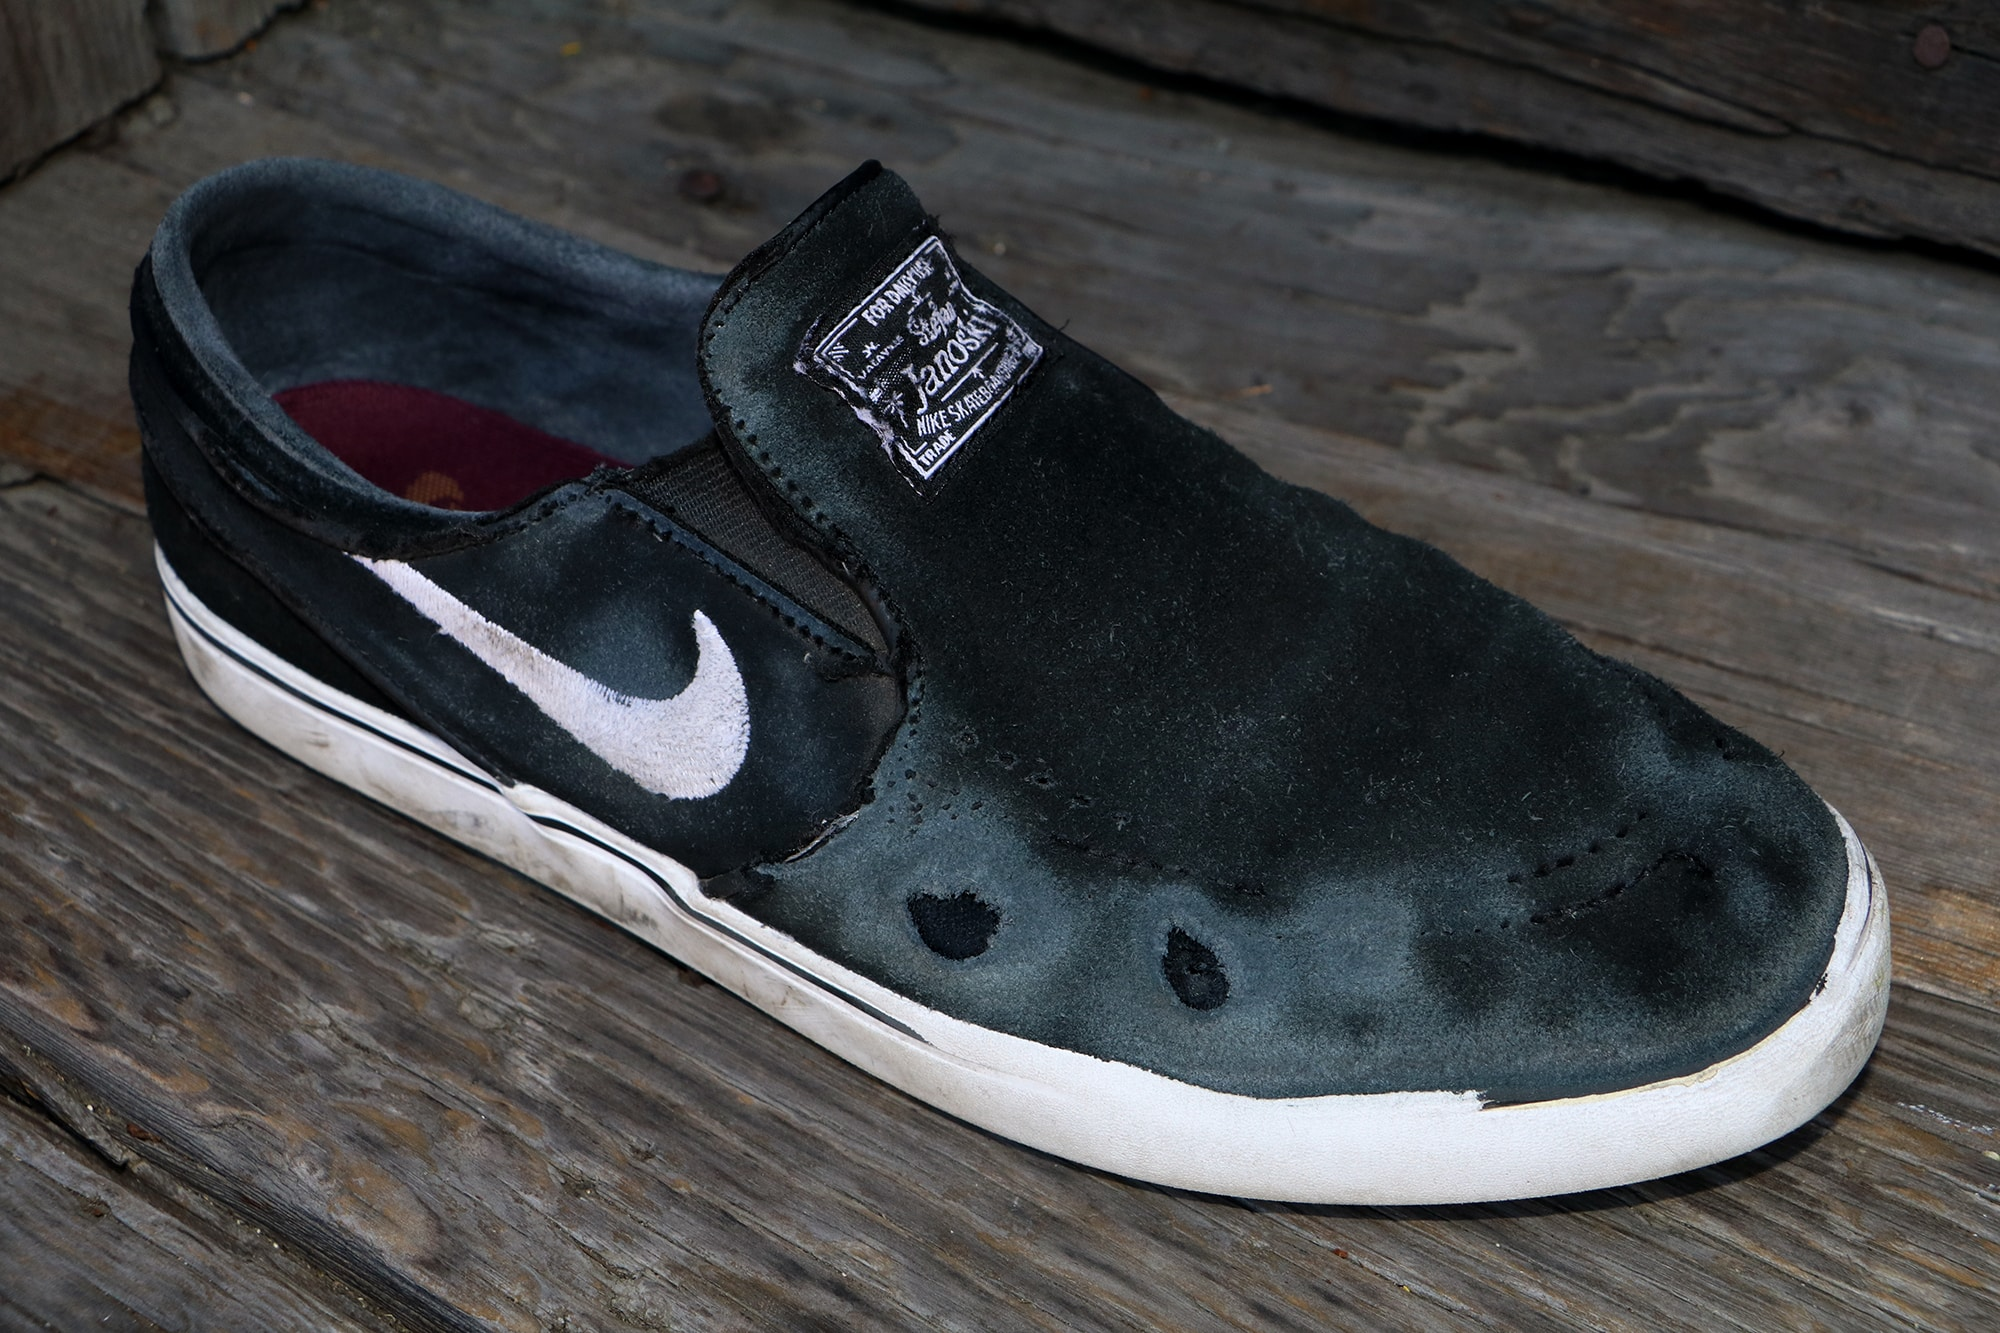 Nike SB Janoski Slip Skate Shoes Wear Test Review  f2373aa44